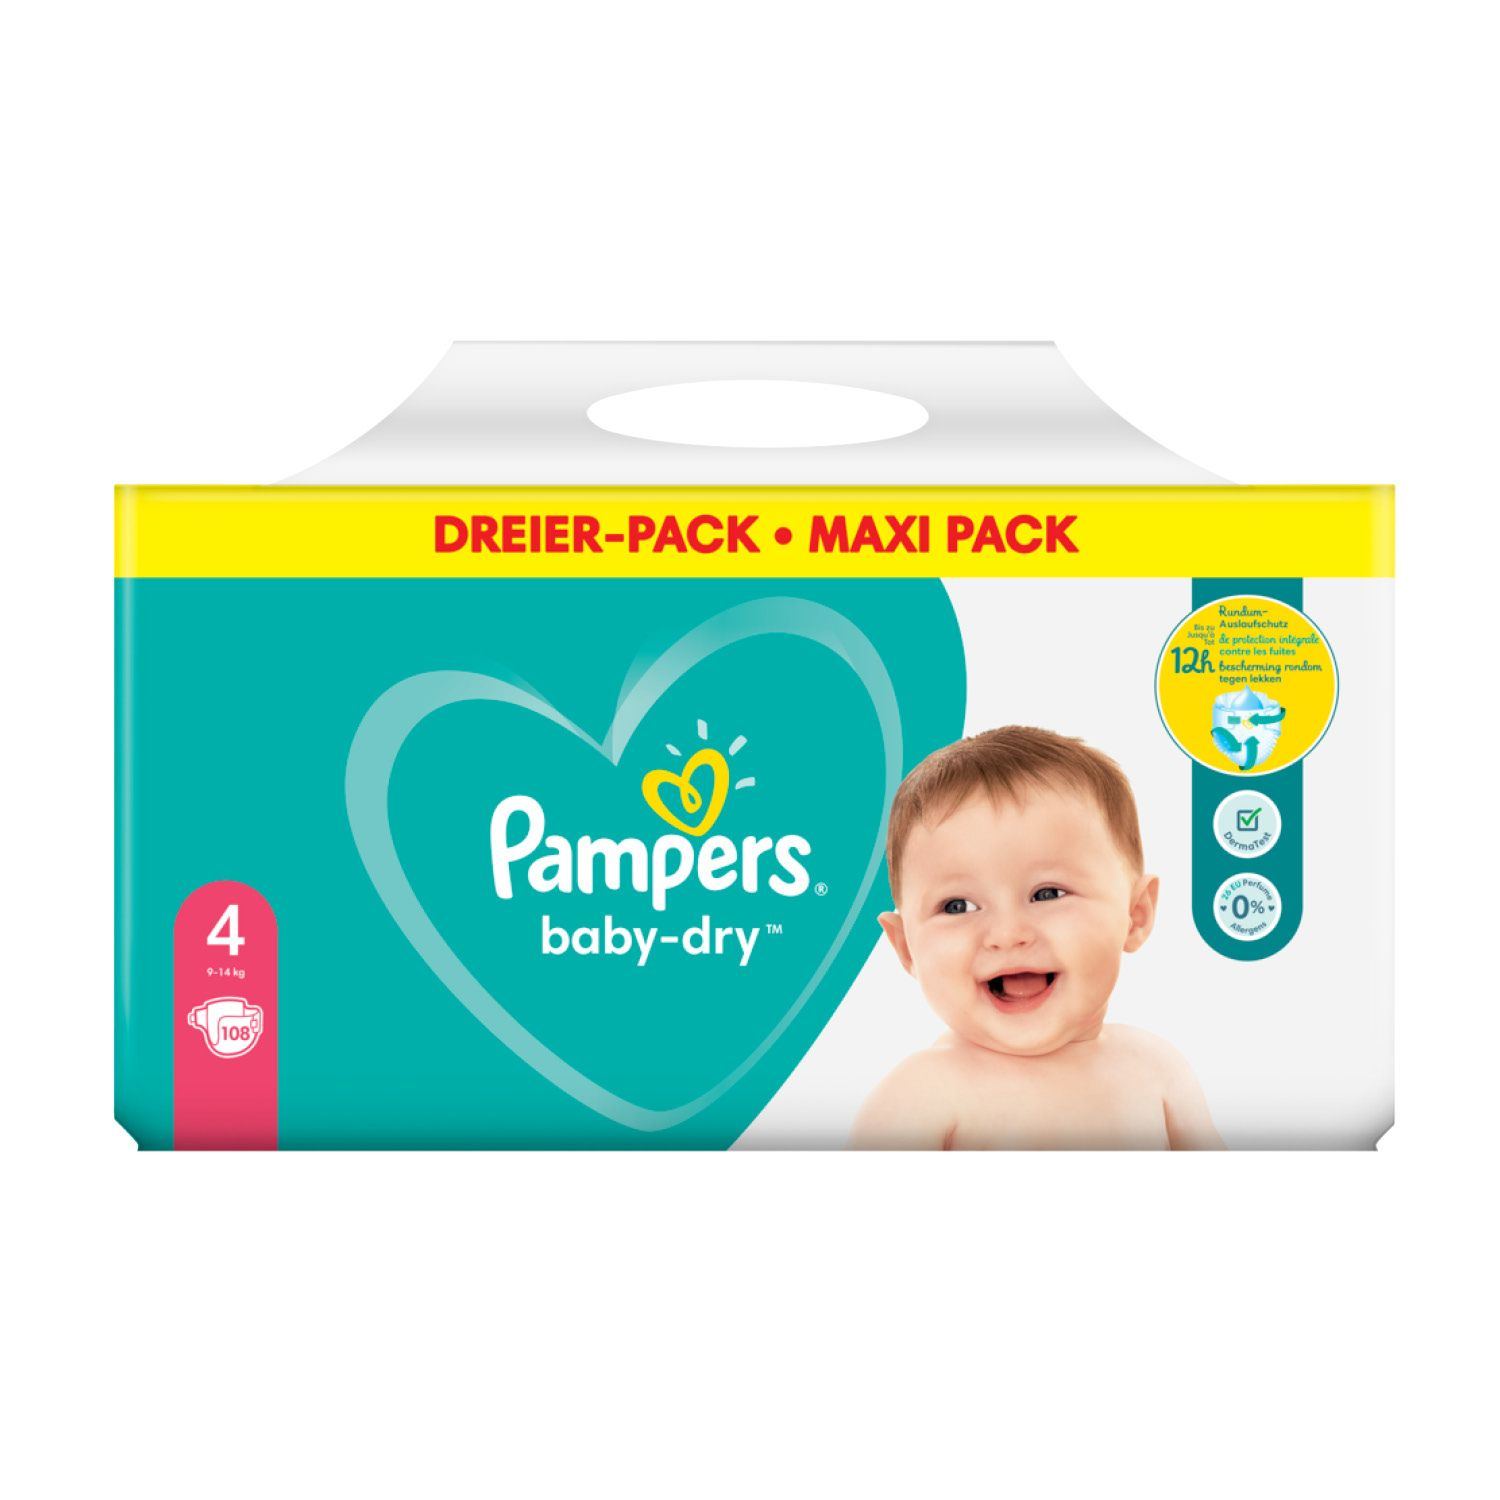 Pampers baby-dry™, 3er-Packung*